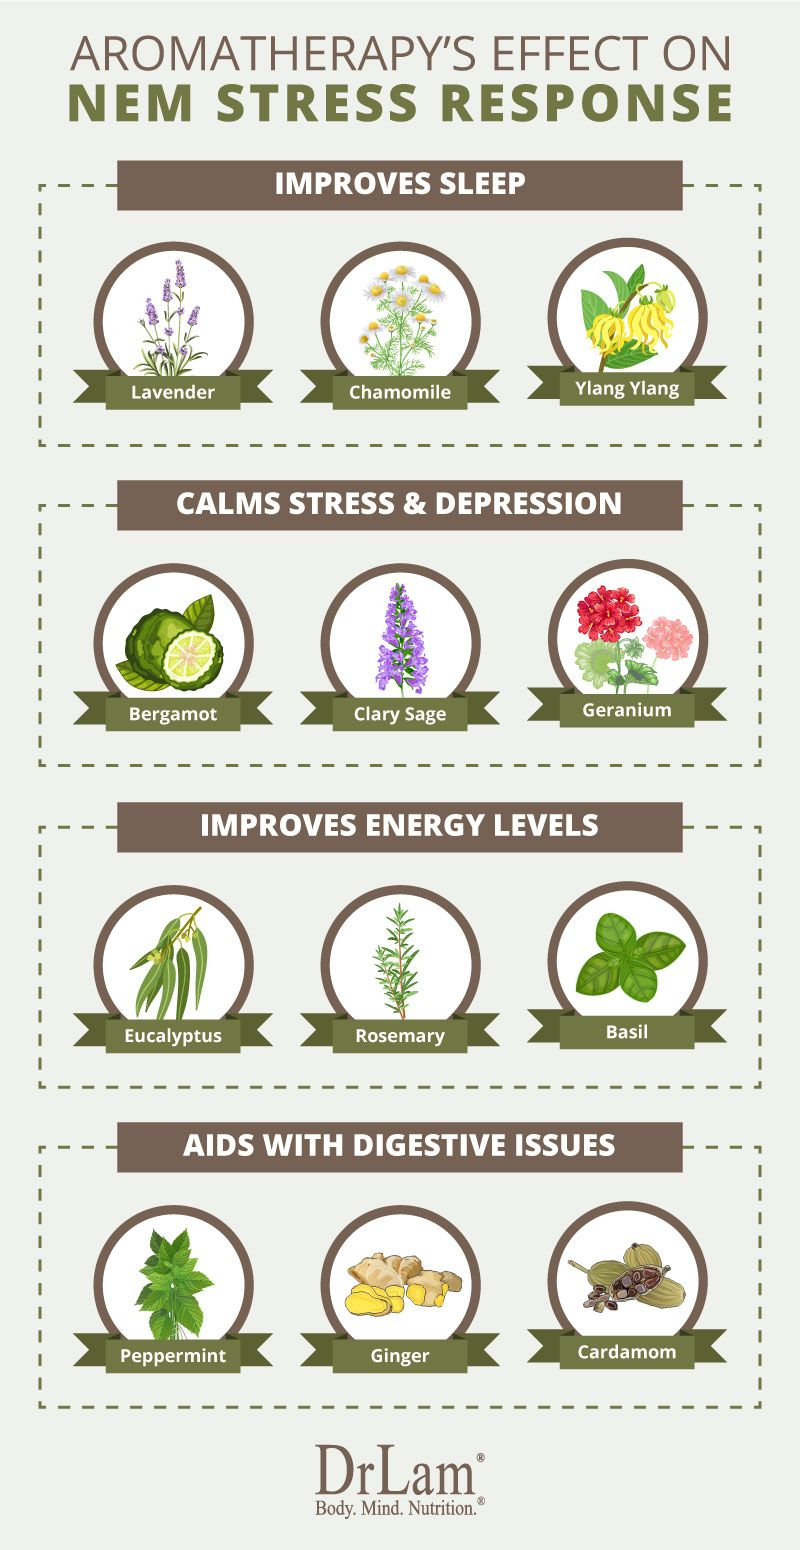 informative guide to aromatherapy benefits and uses for beginnersinformative guide to aromatherapy benefits and uses for beginners